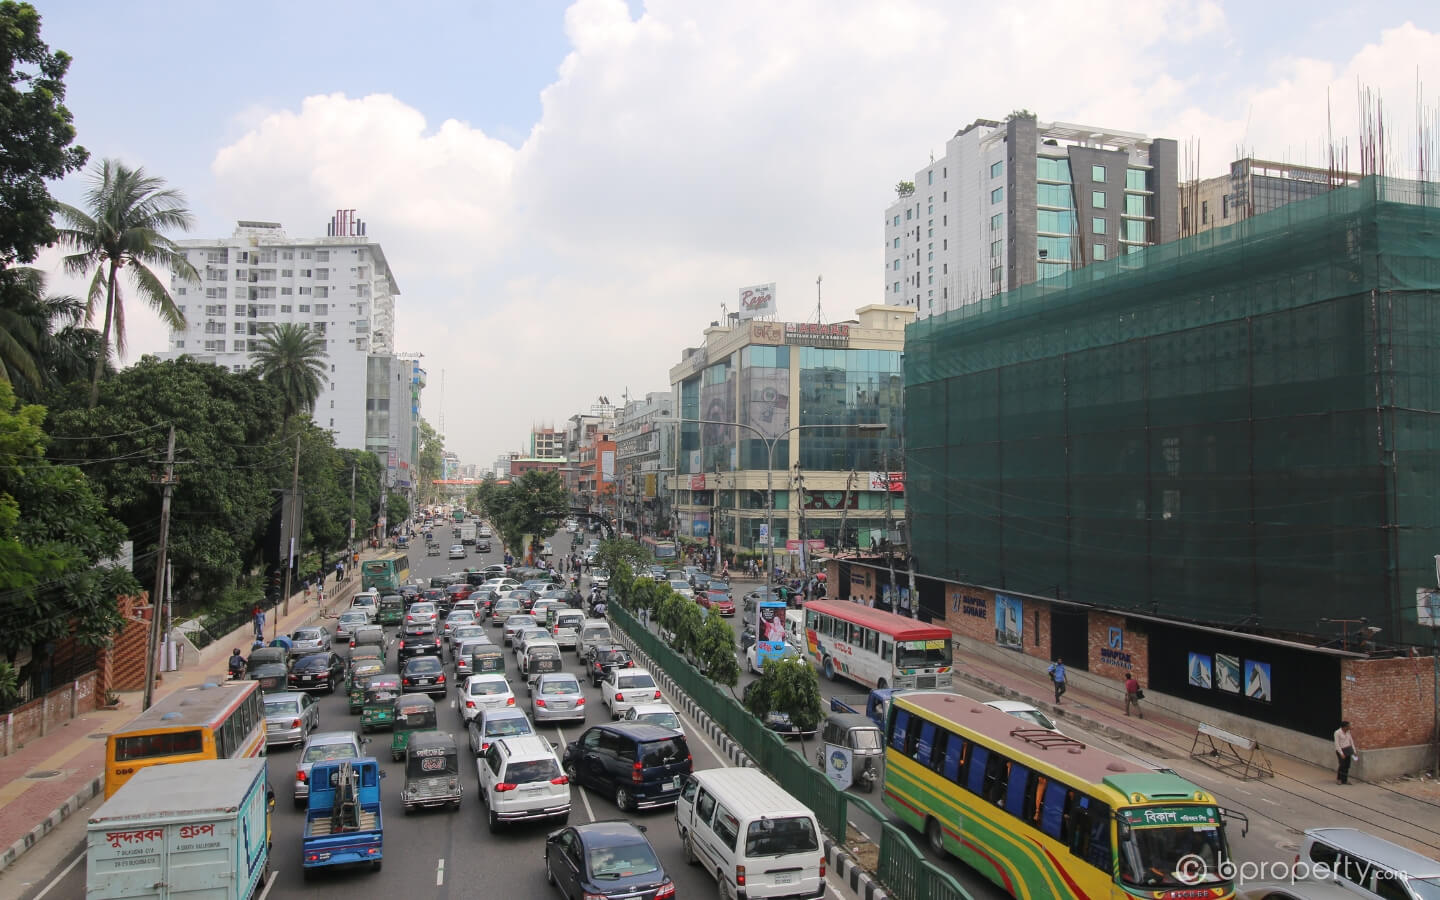 Hustle and bustle of Dhanmondi makes them an ideal candidate for established companies to have an office